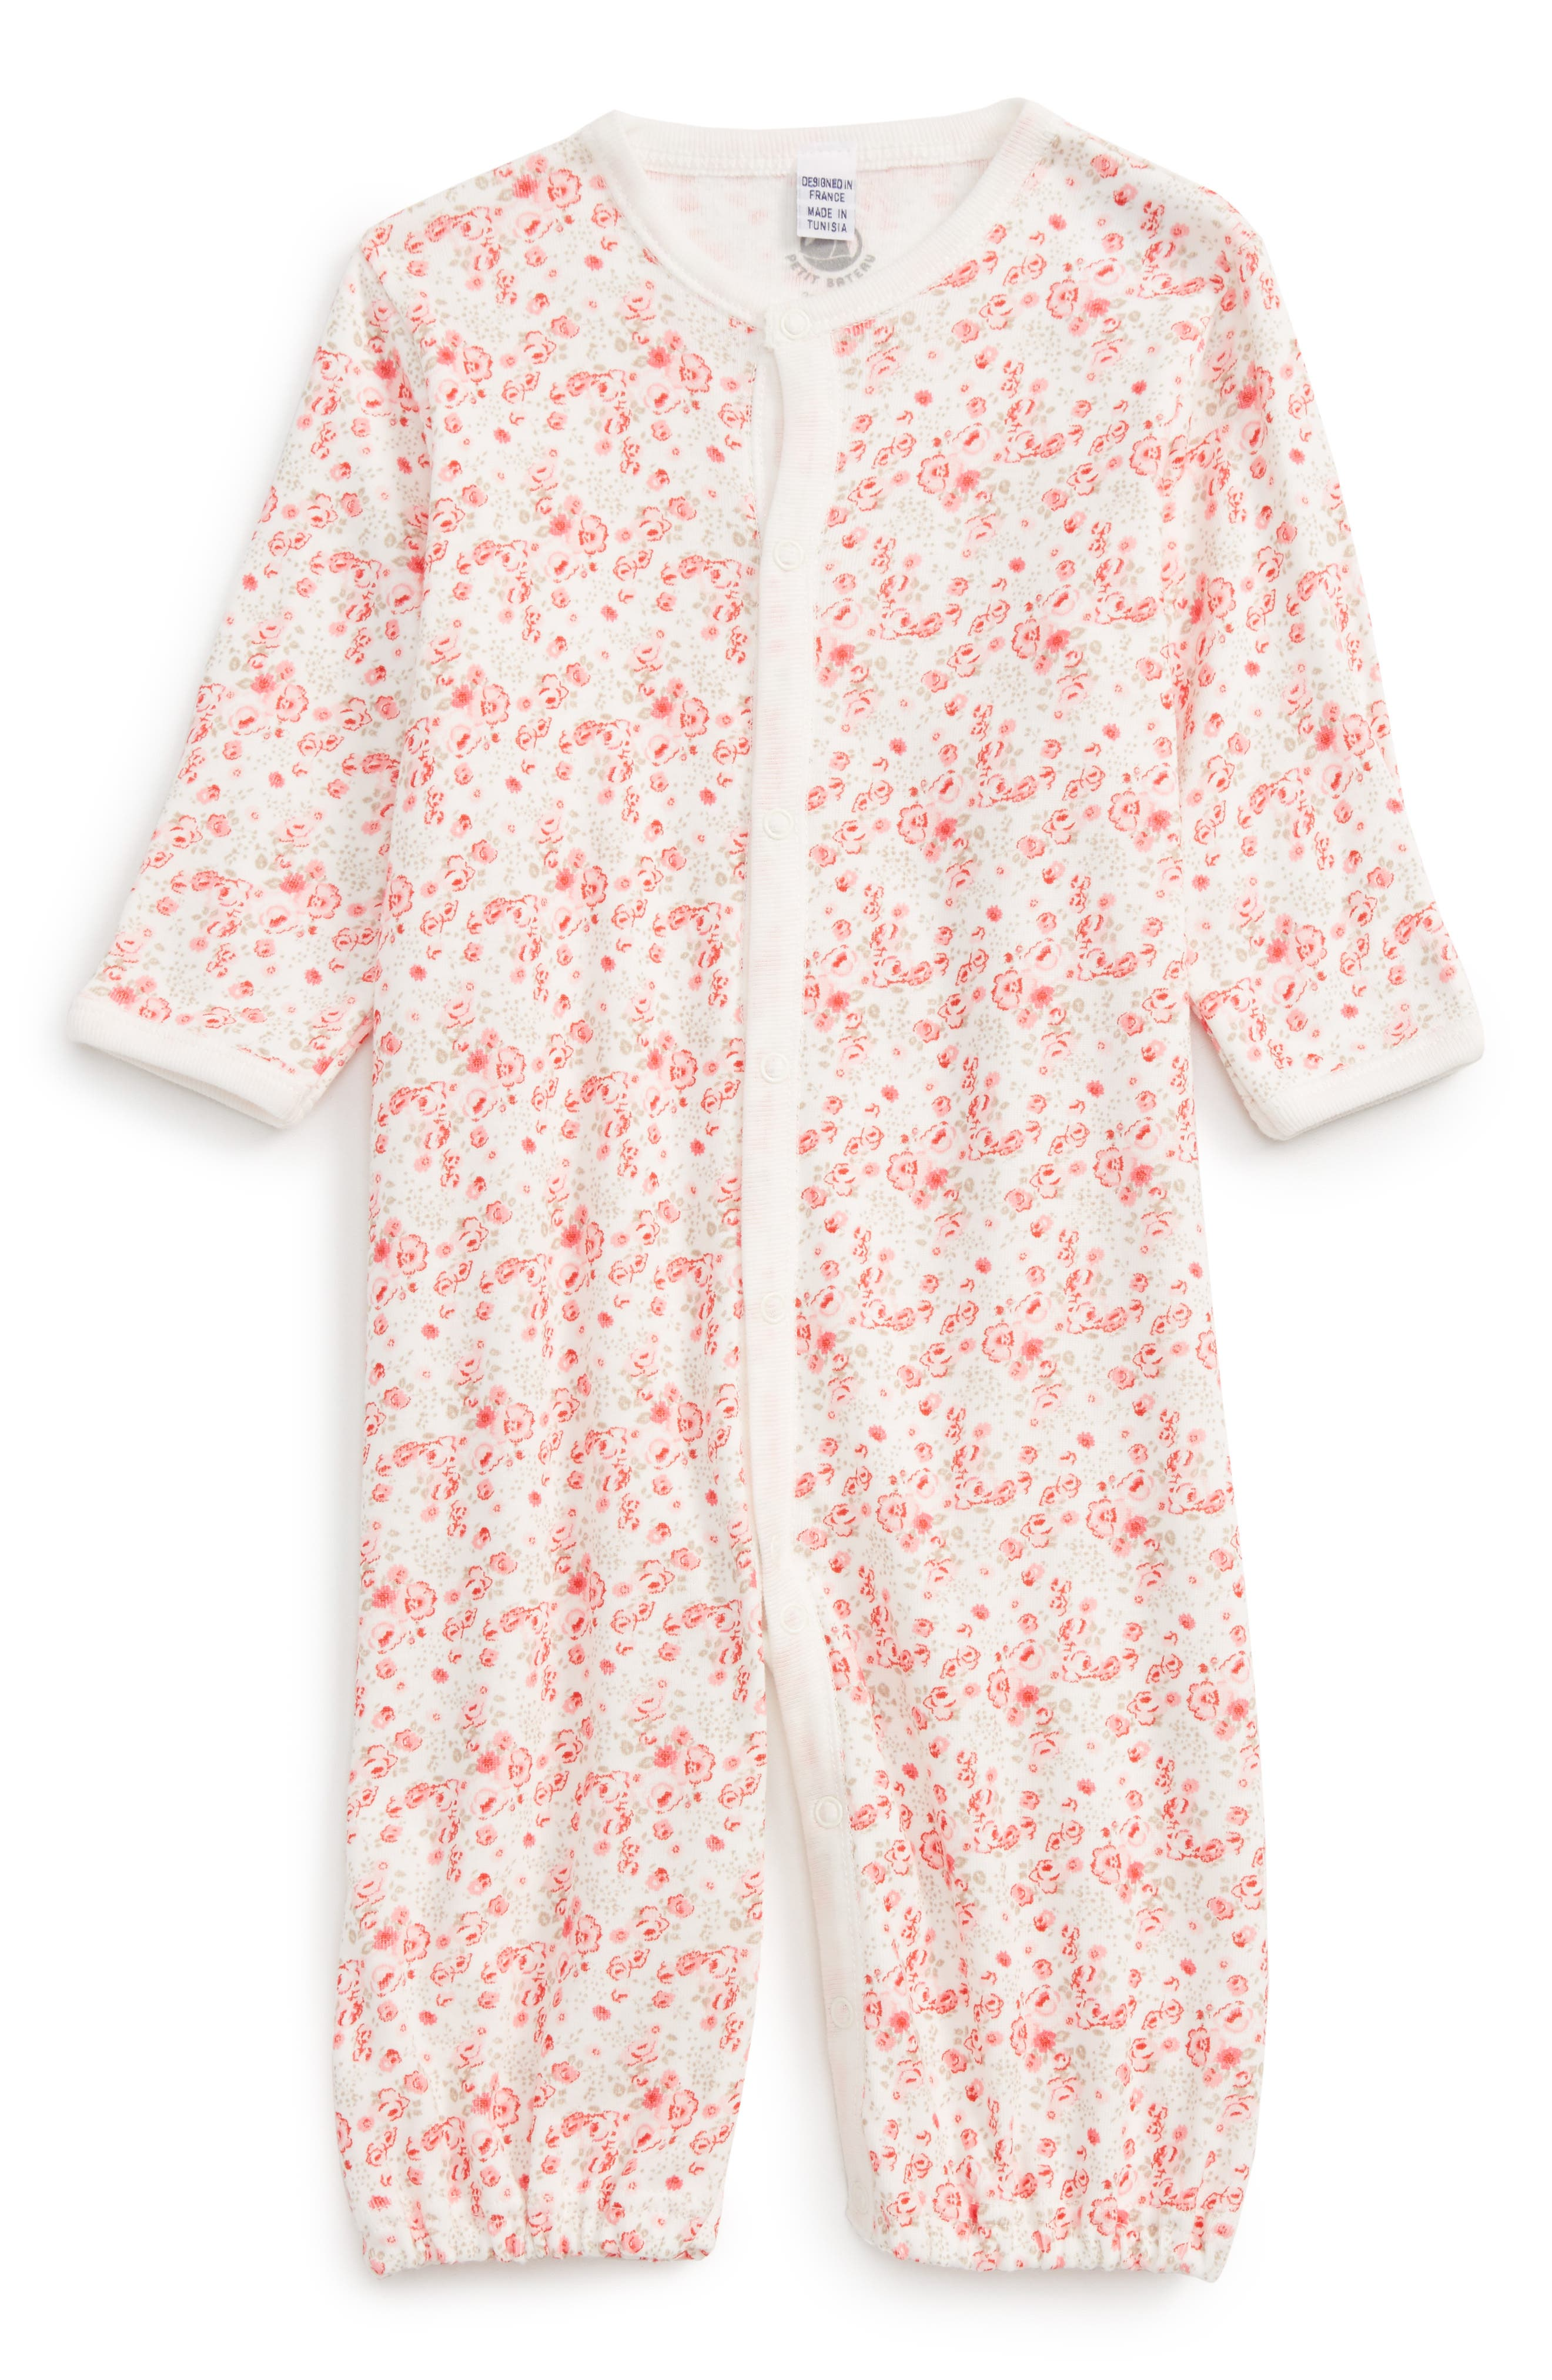 Main Image - Petit Bateau Convertible Gown (Baby Girls)